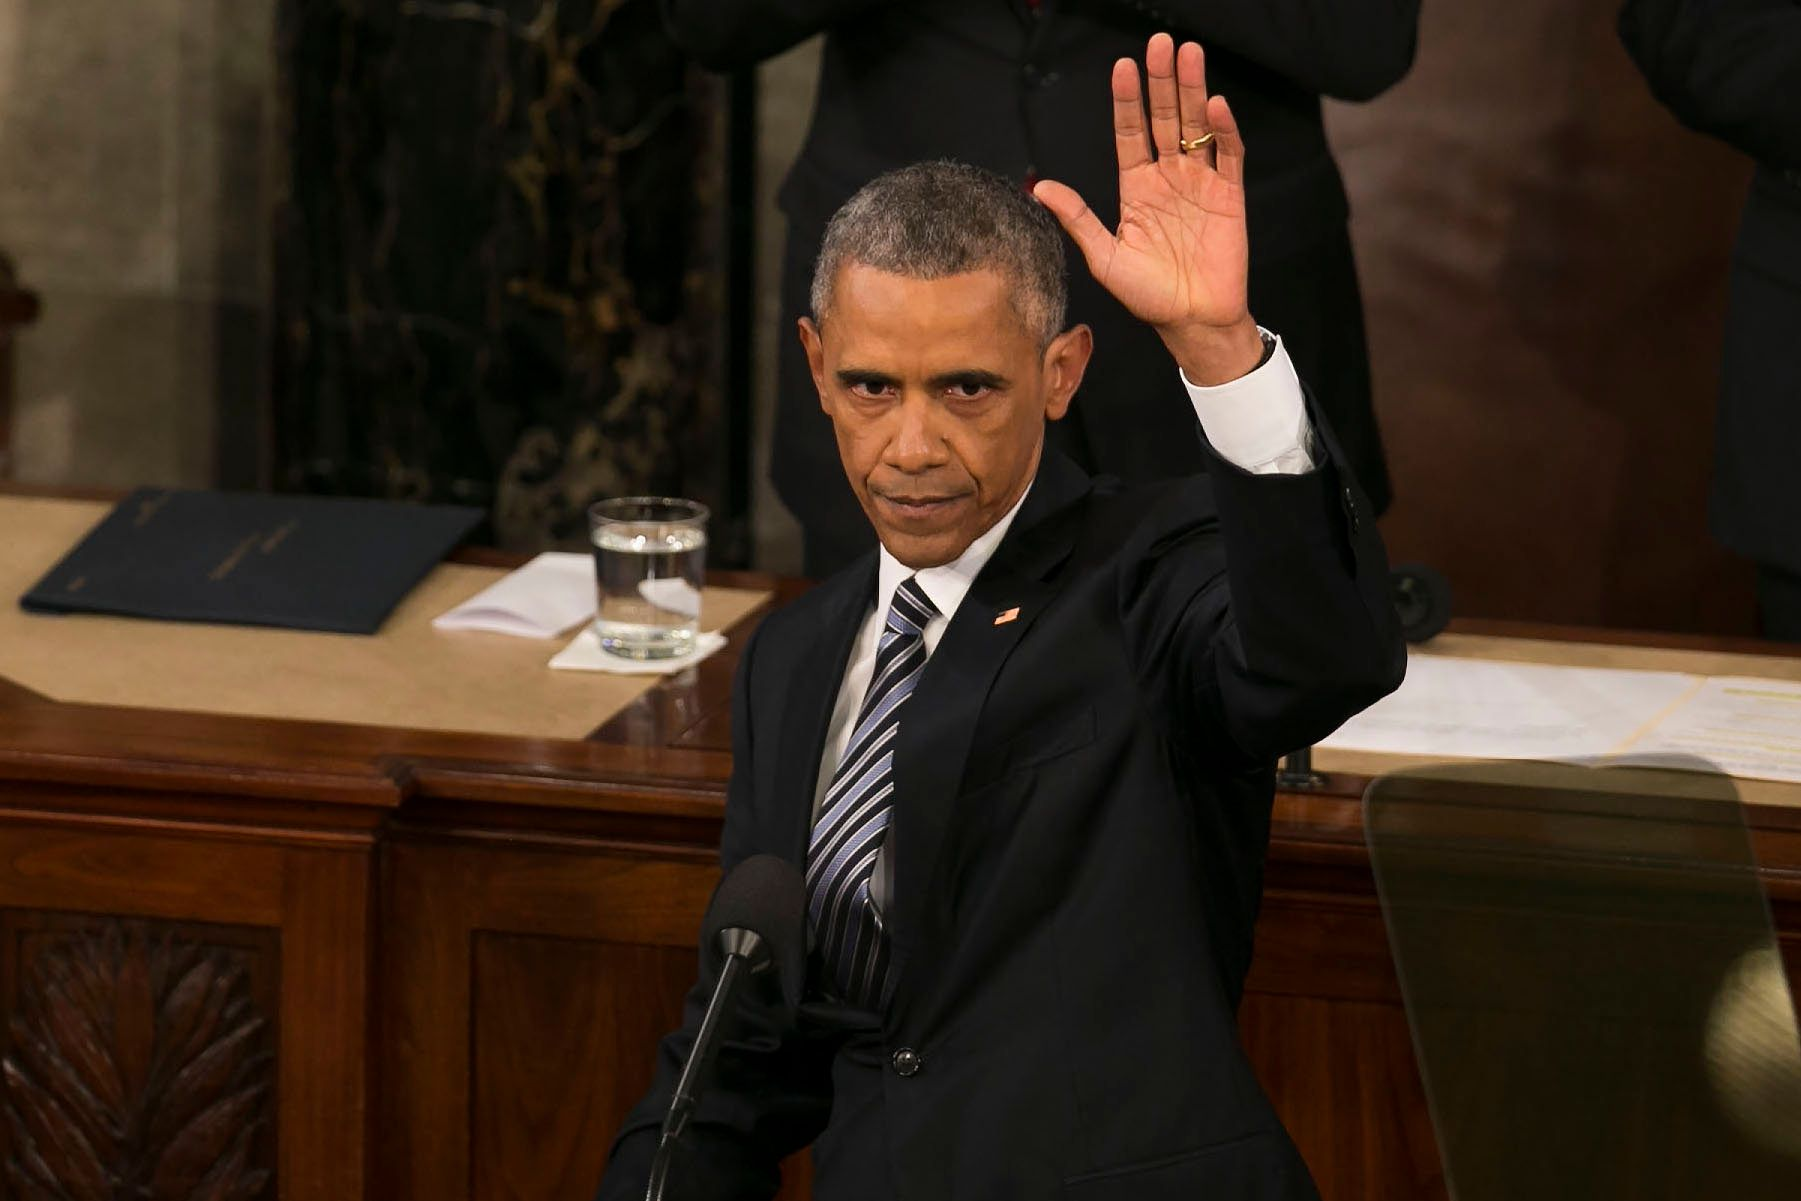 UNITED STATES - JANUARY 12 - President Barack Obama waves during his final State of the Union to a joint session of Congress in the House Chamber on Capitol Hill in Washington, Tuesday, Jan. 12, 2016. Behind him Vice President Joe Biden and House Speaker Paul Ryan listen. (Photo By Al Drago/CQ Roll Call)